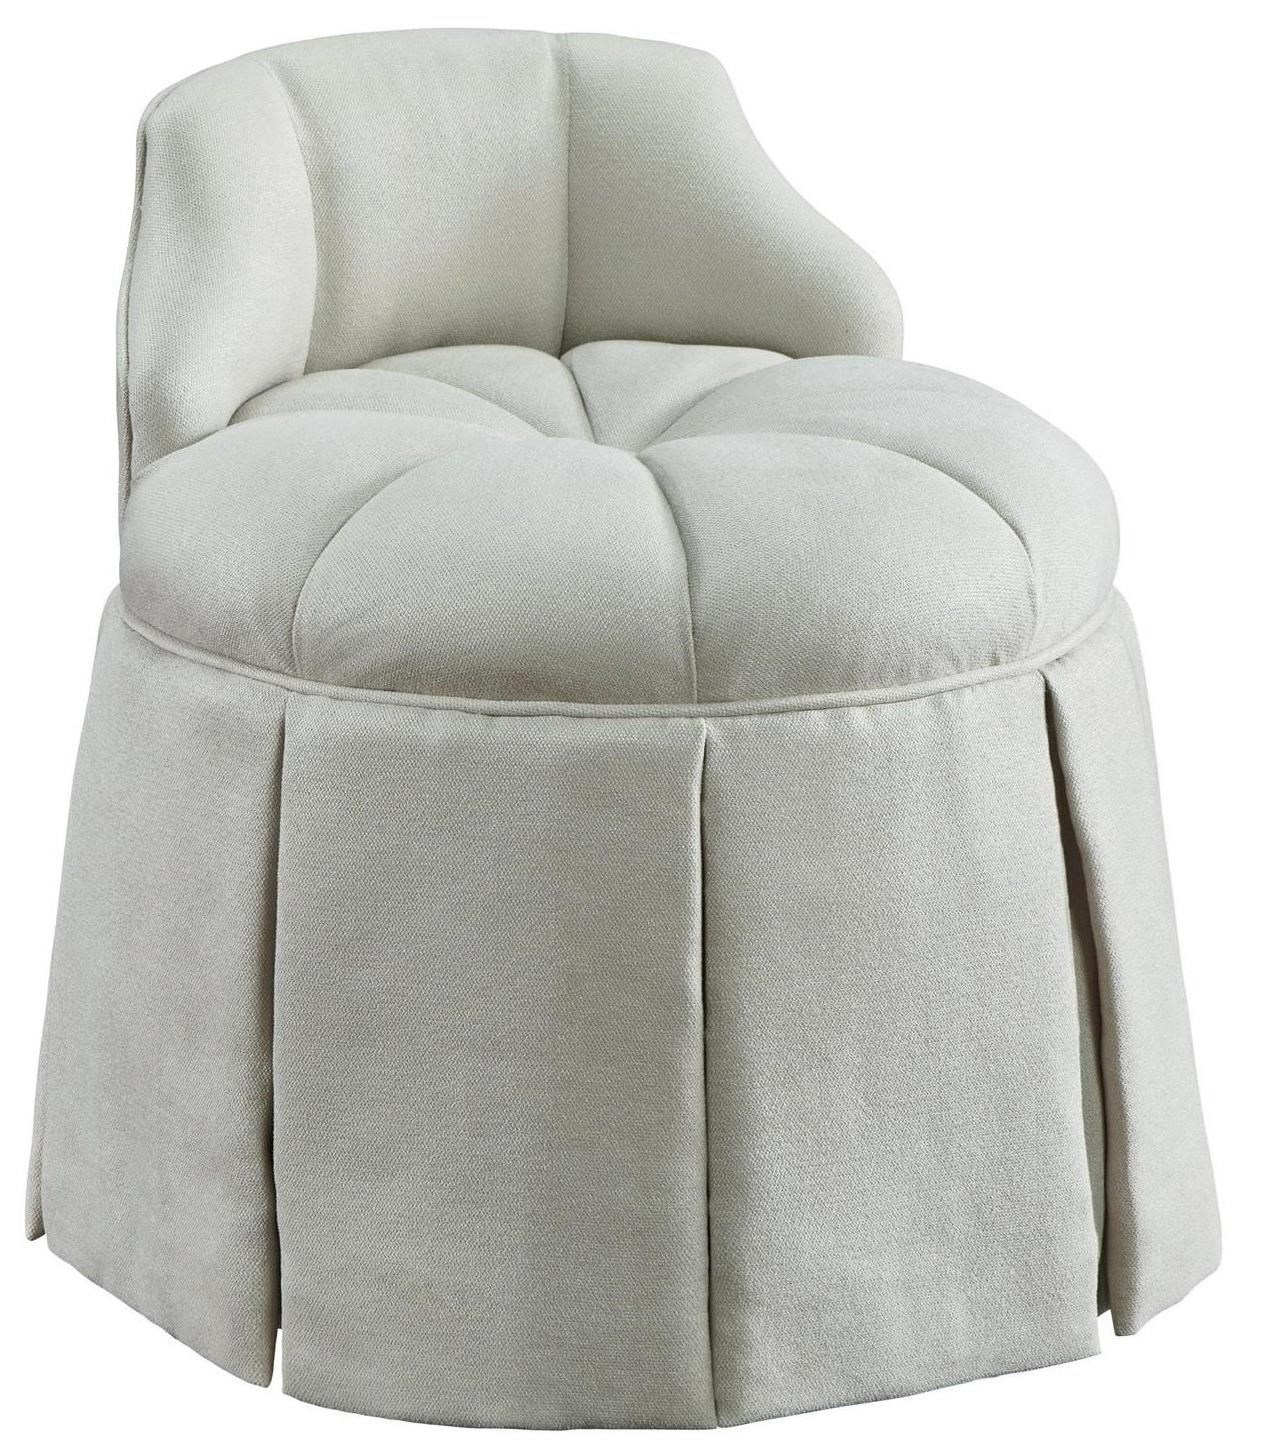 Tufted Vanity Chair Chloe Vanity Stool With Tufted Swivel Seat By Fine Furniture Design